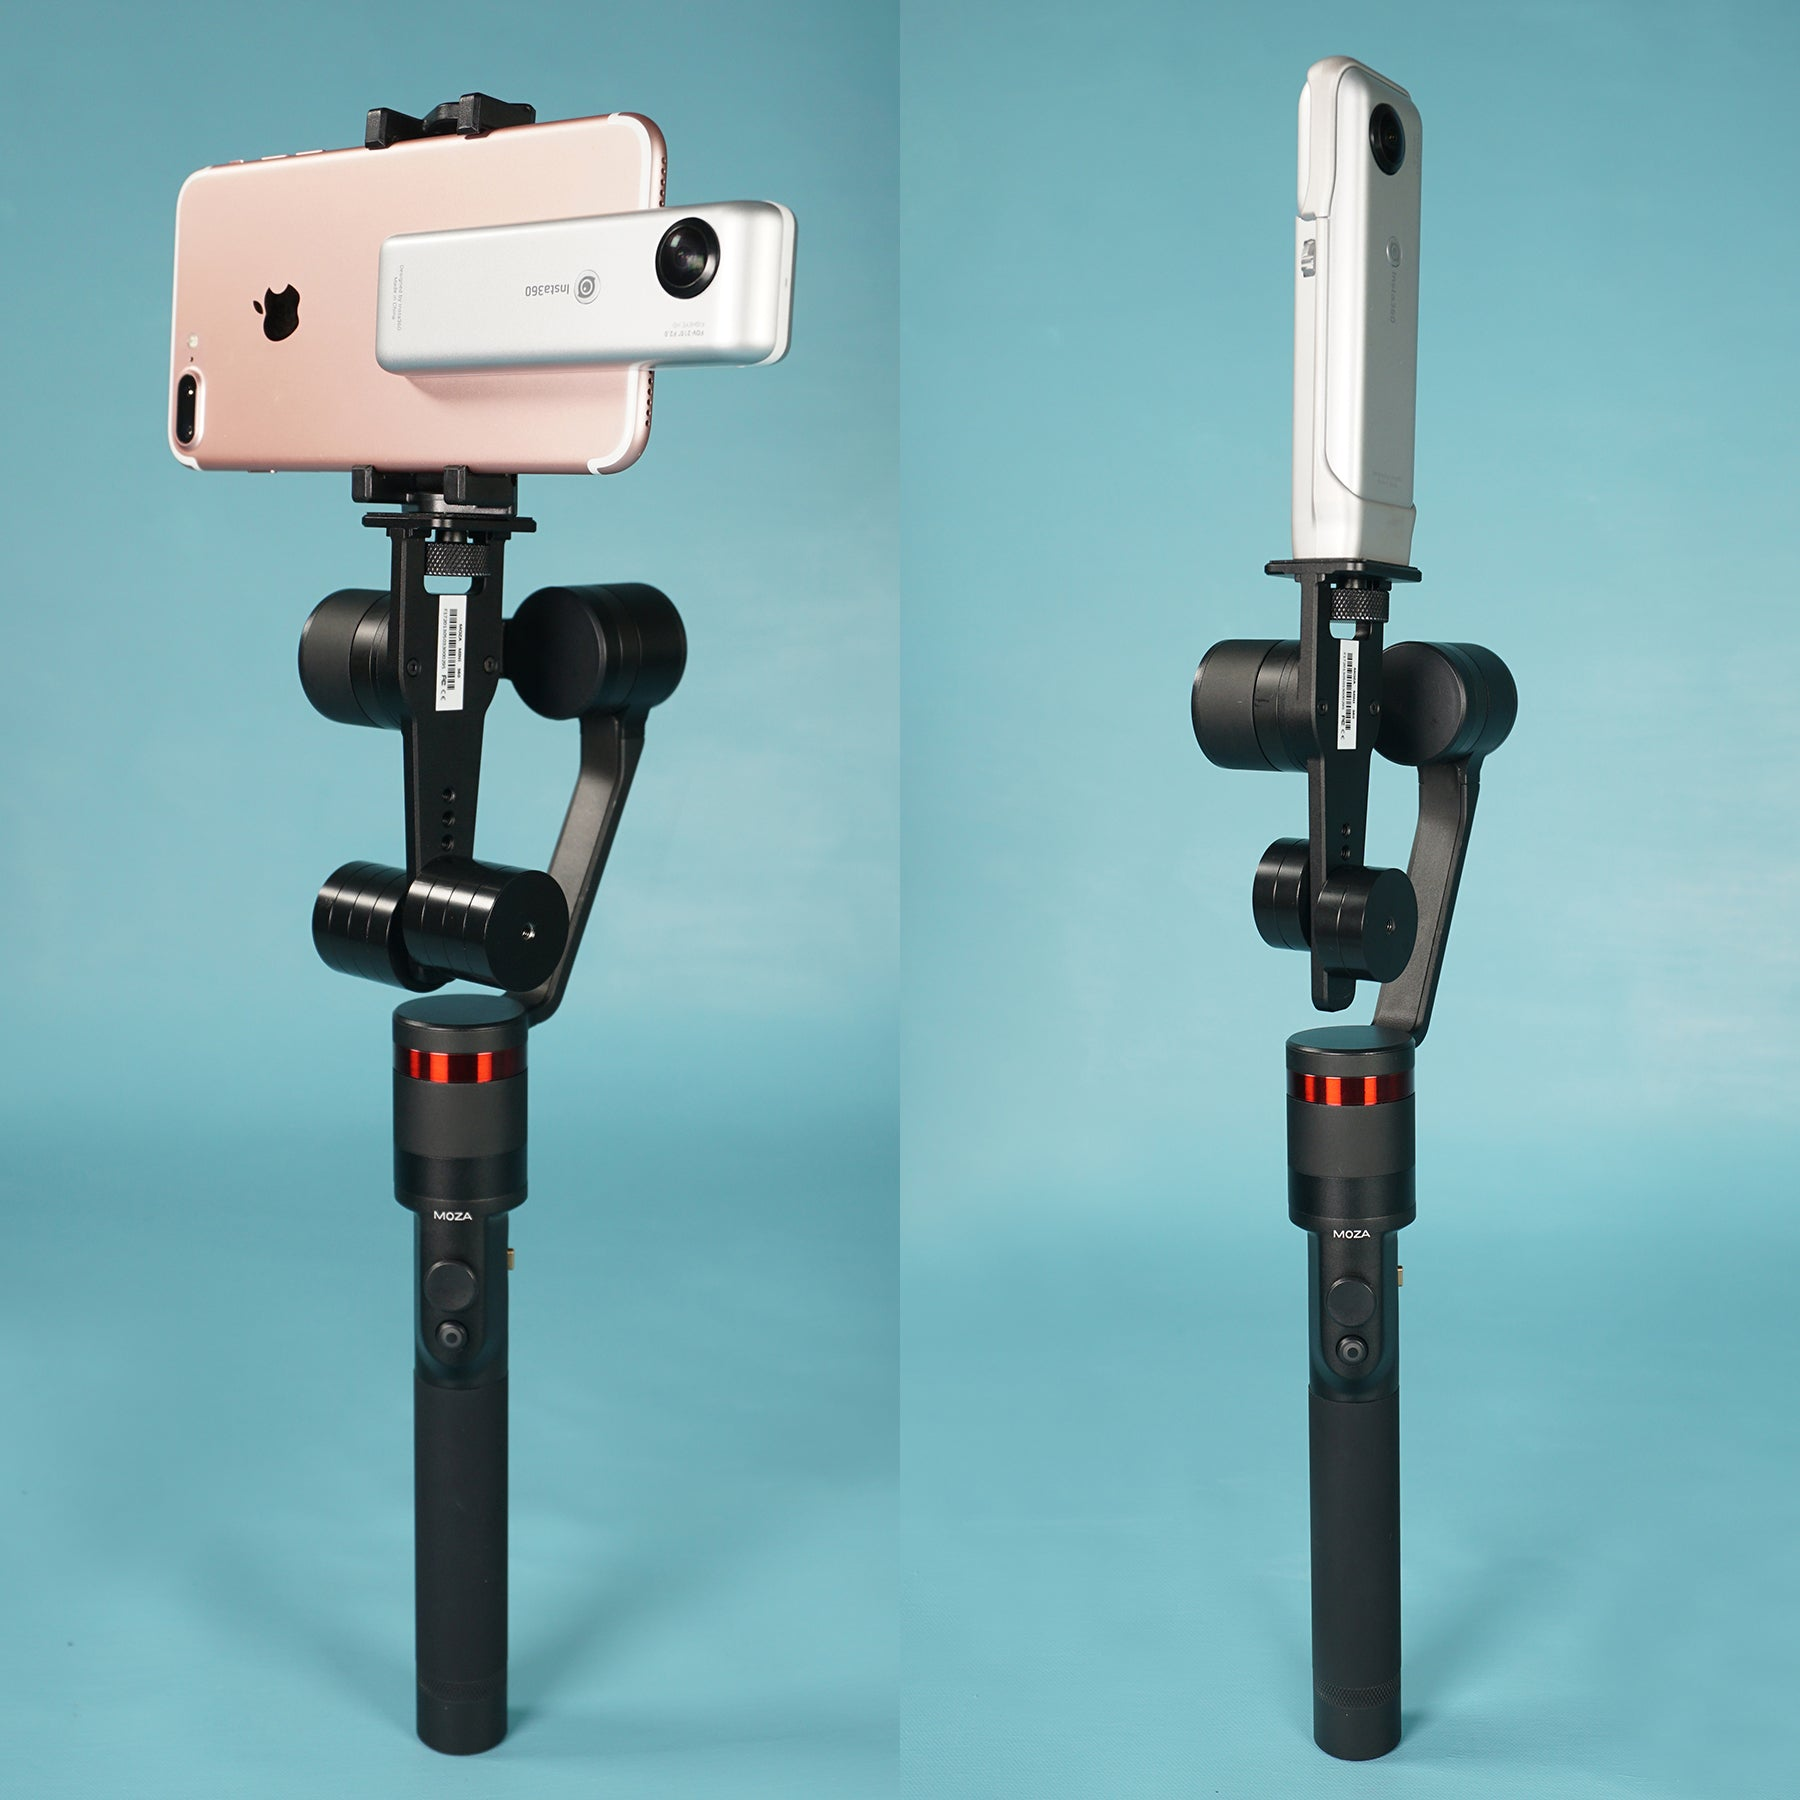 MOZA Guru 360° Camera Stabilizer